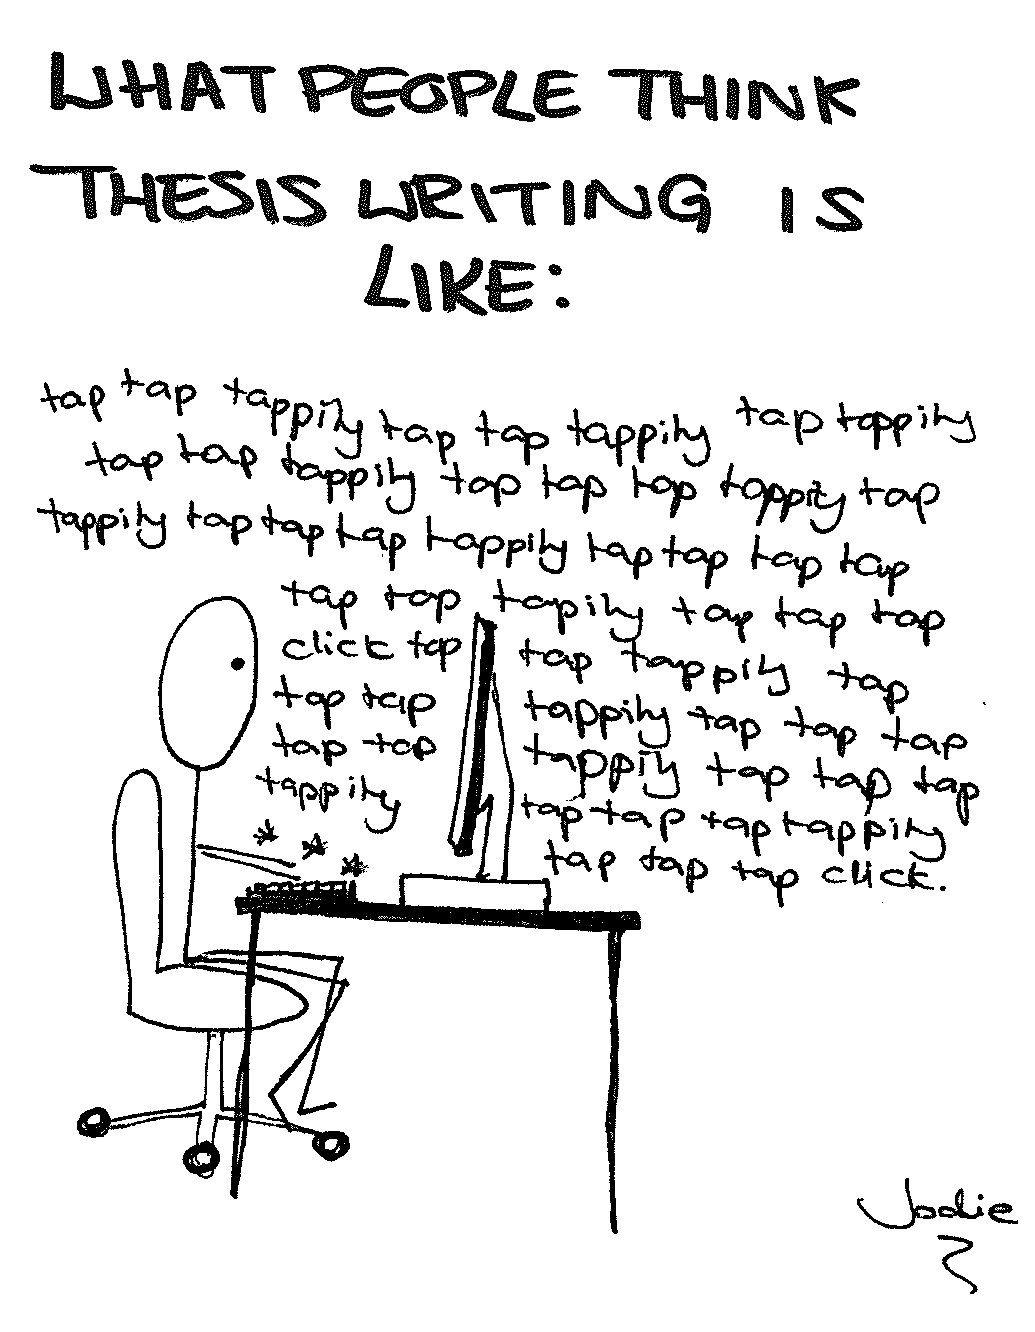 Help For Thesis Writing People think thesis writing is like Help For Thesis Writing